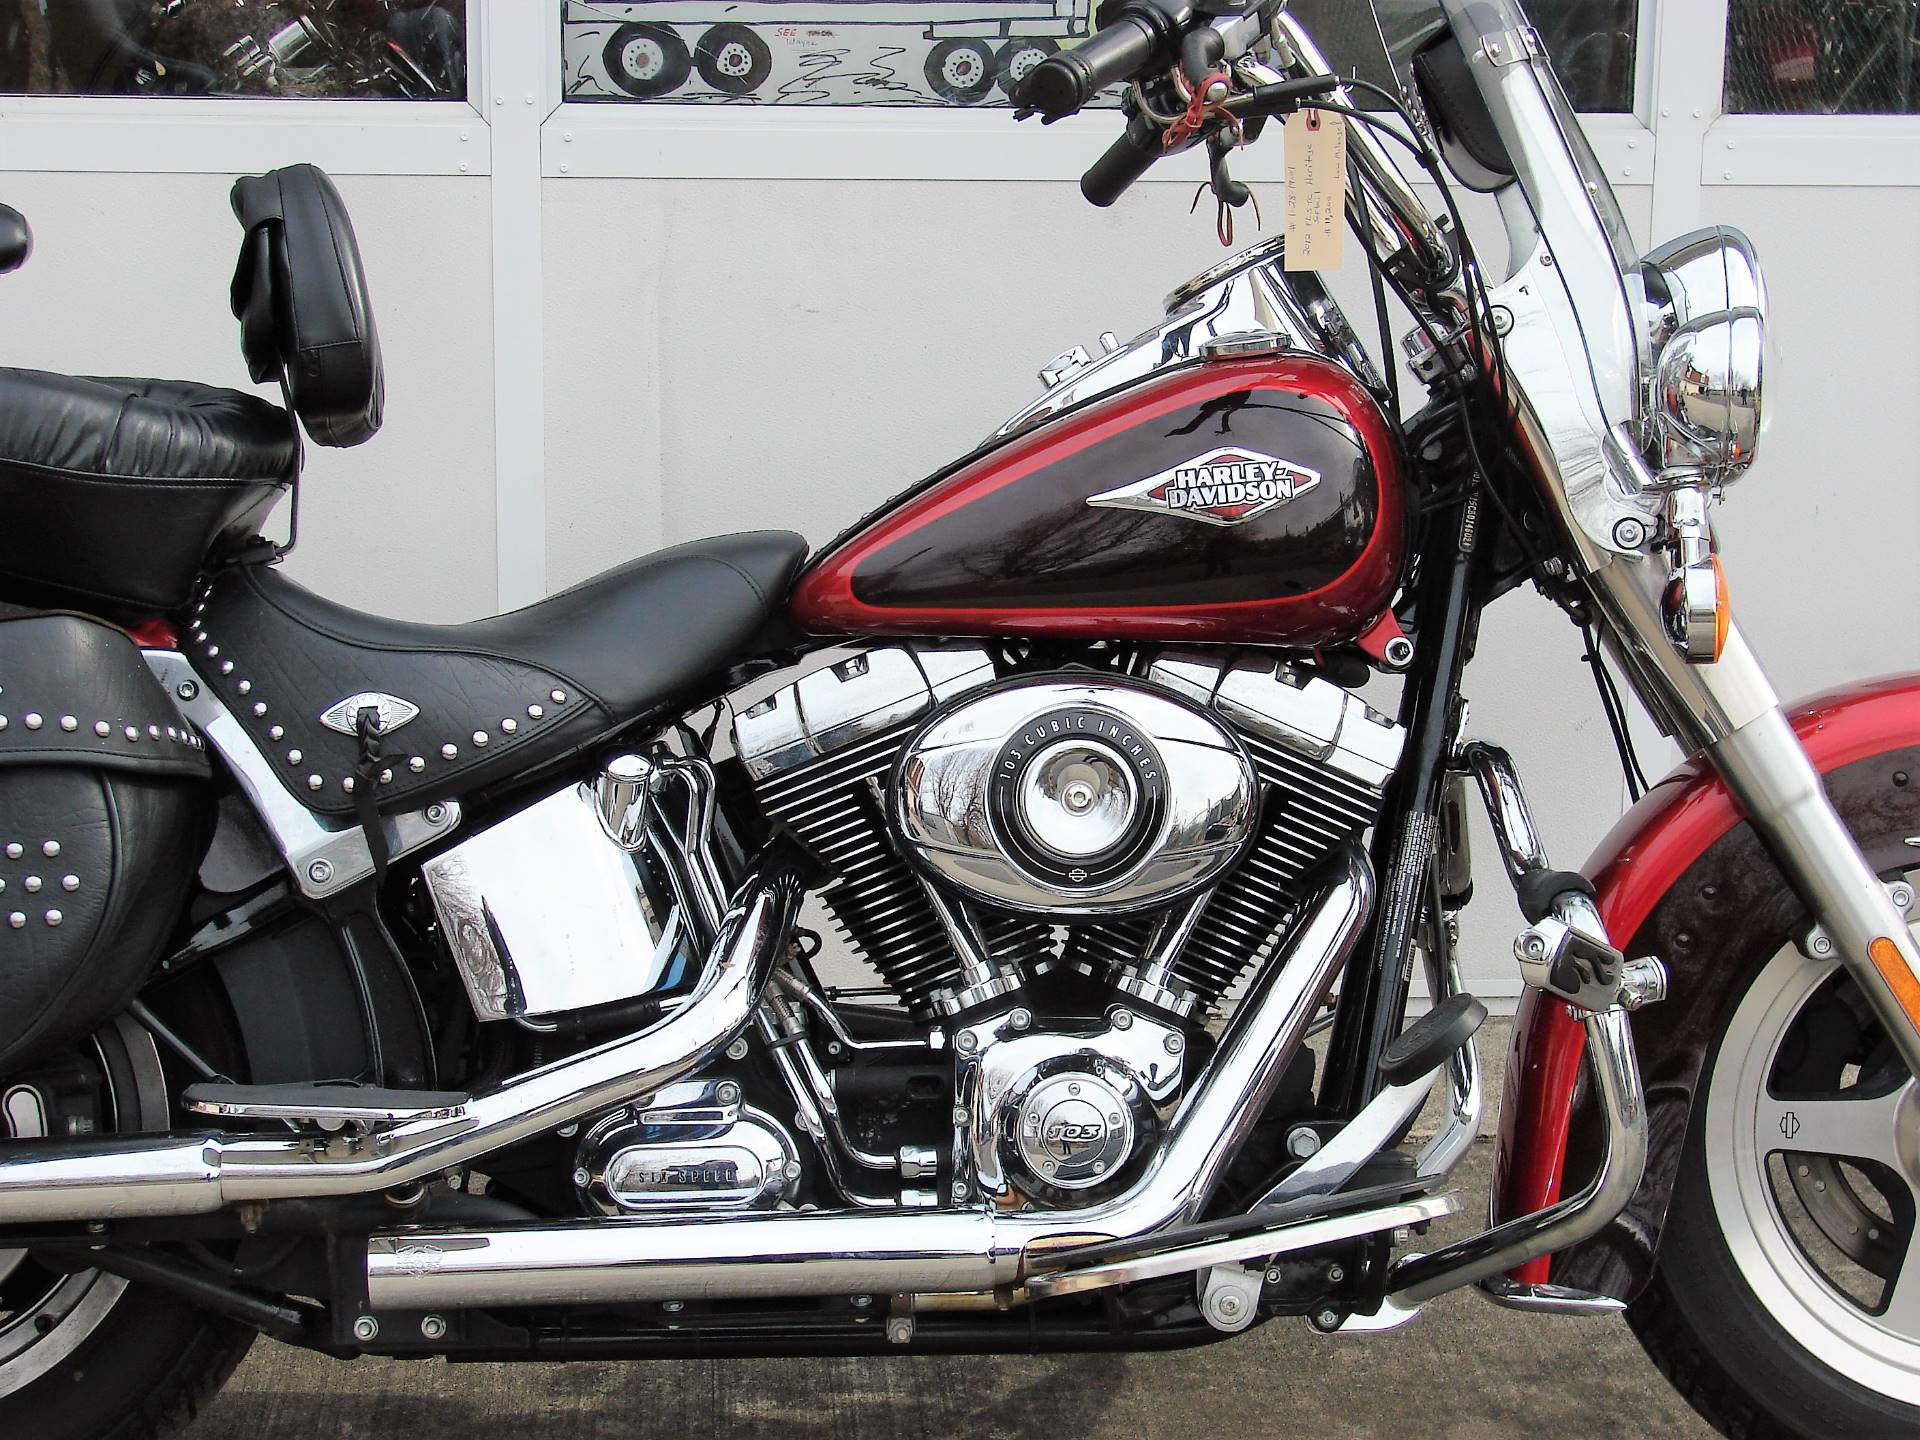 2012 Harley-Davidson Heritage Softail FLSTC in Williamstown, New Jersey - Photo 2